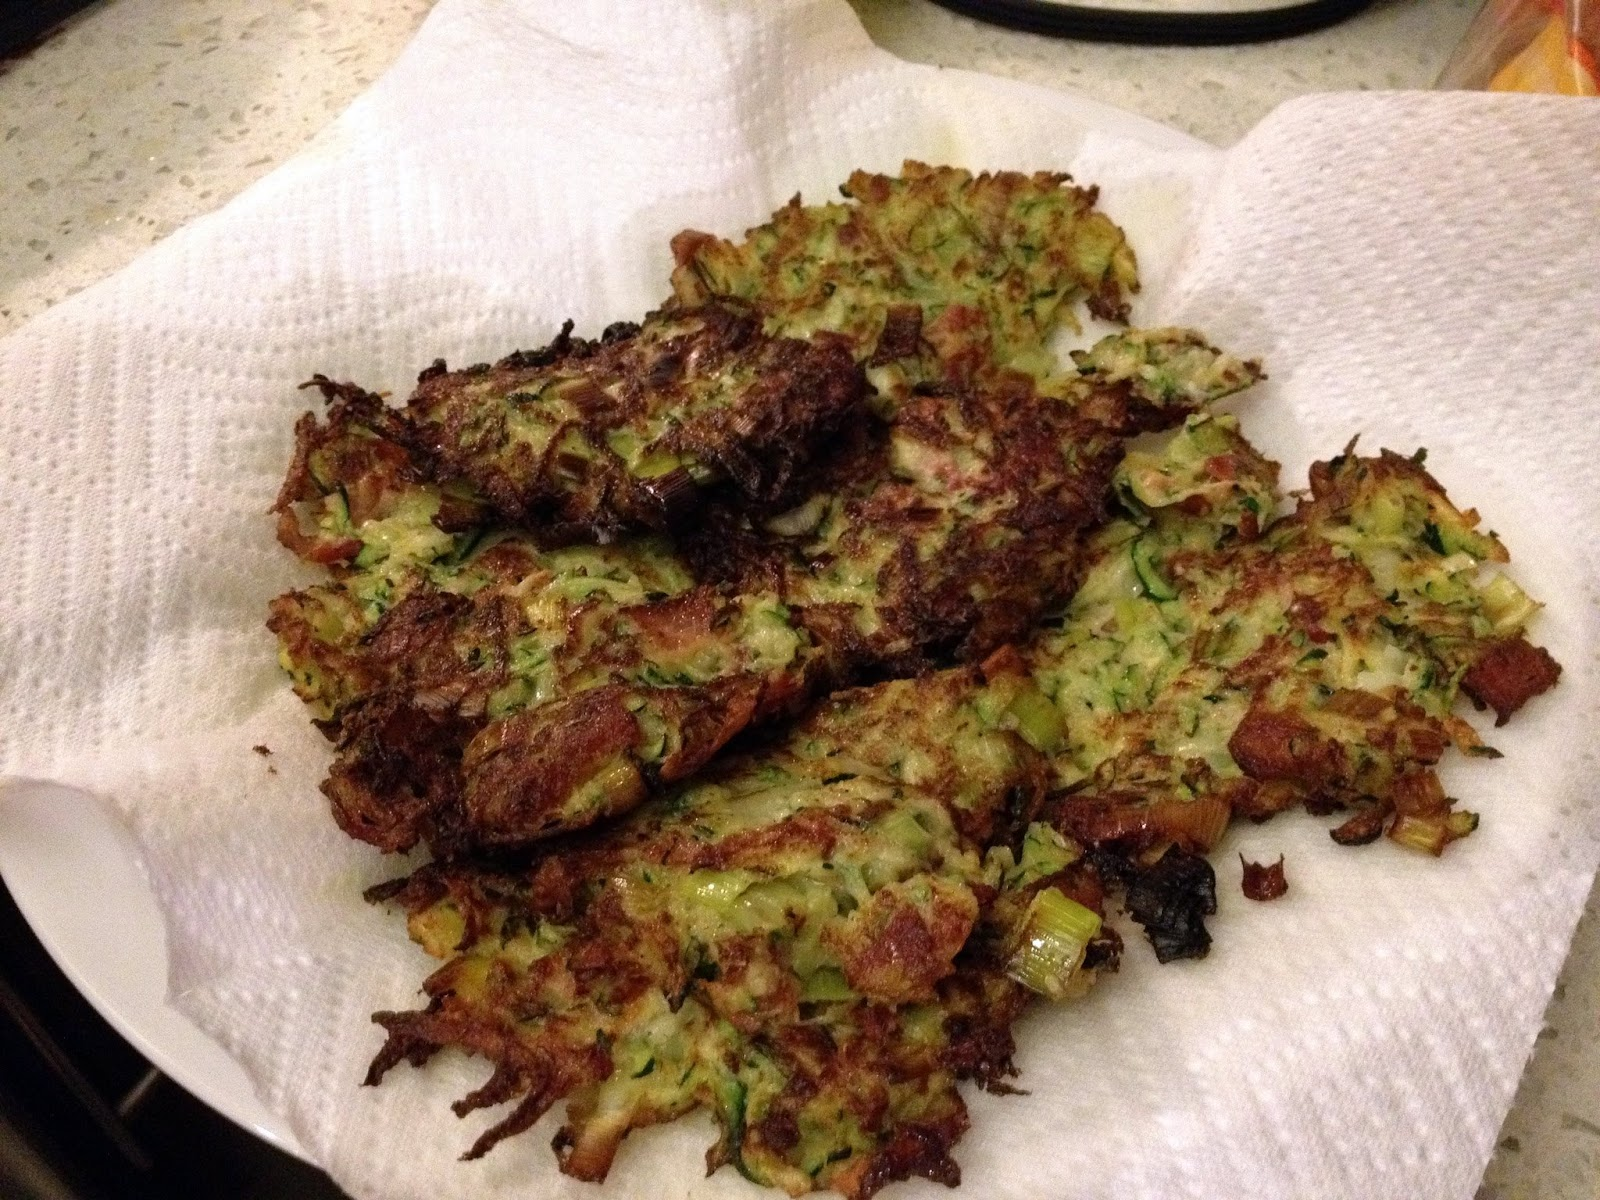 the zucchini latkes turned out a bit flimsy in consistency